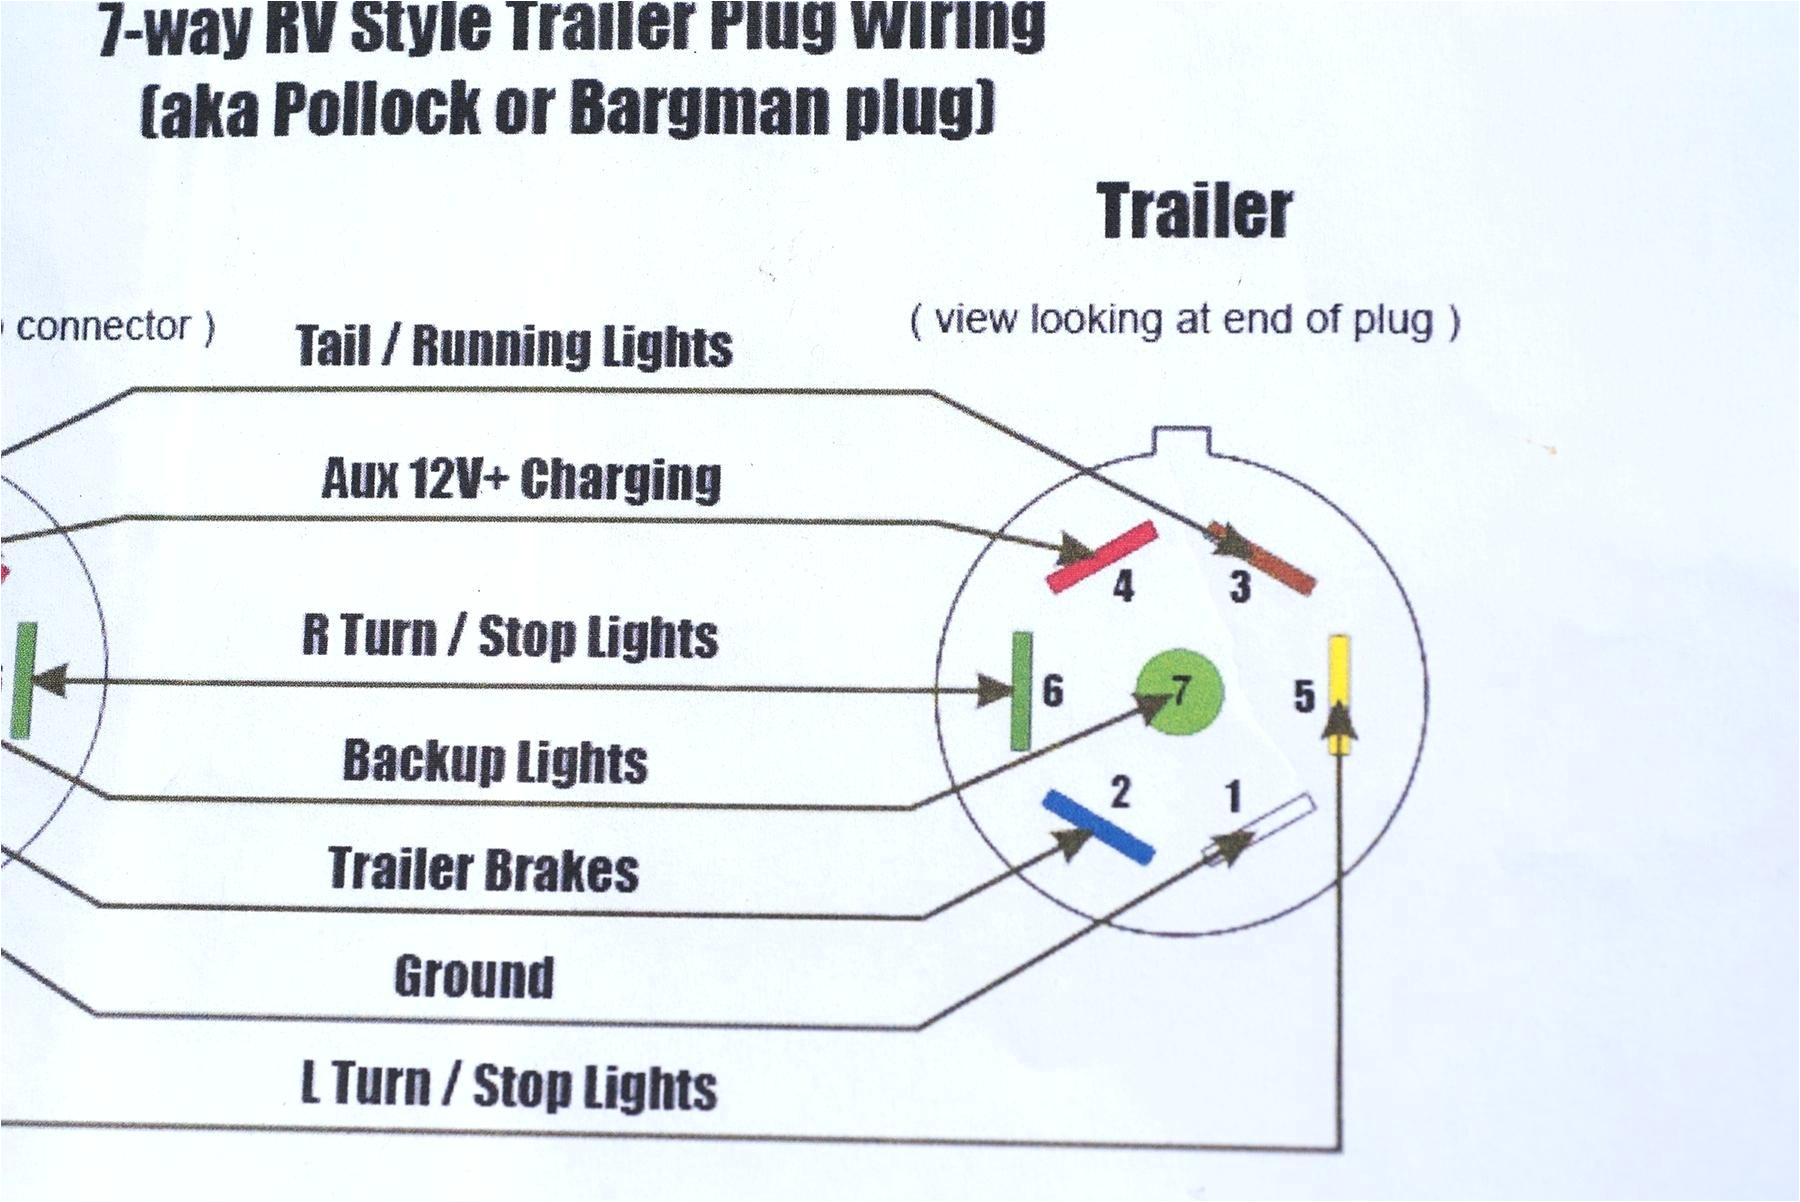 2005 chevy silverado trailer wiring diagram schema diagram database 7 way trailer plug wiring diagram chevy